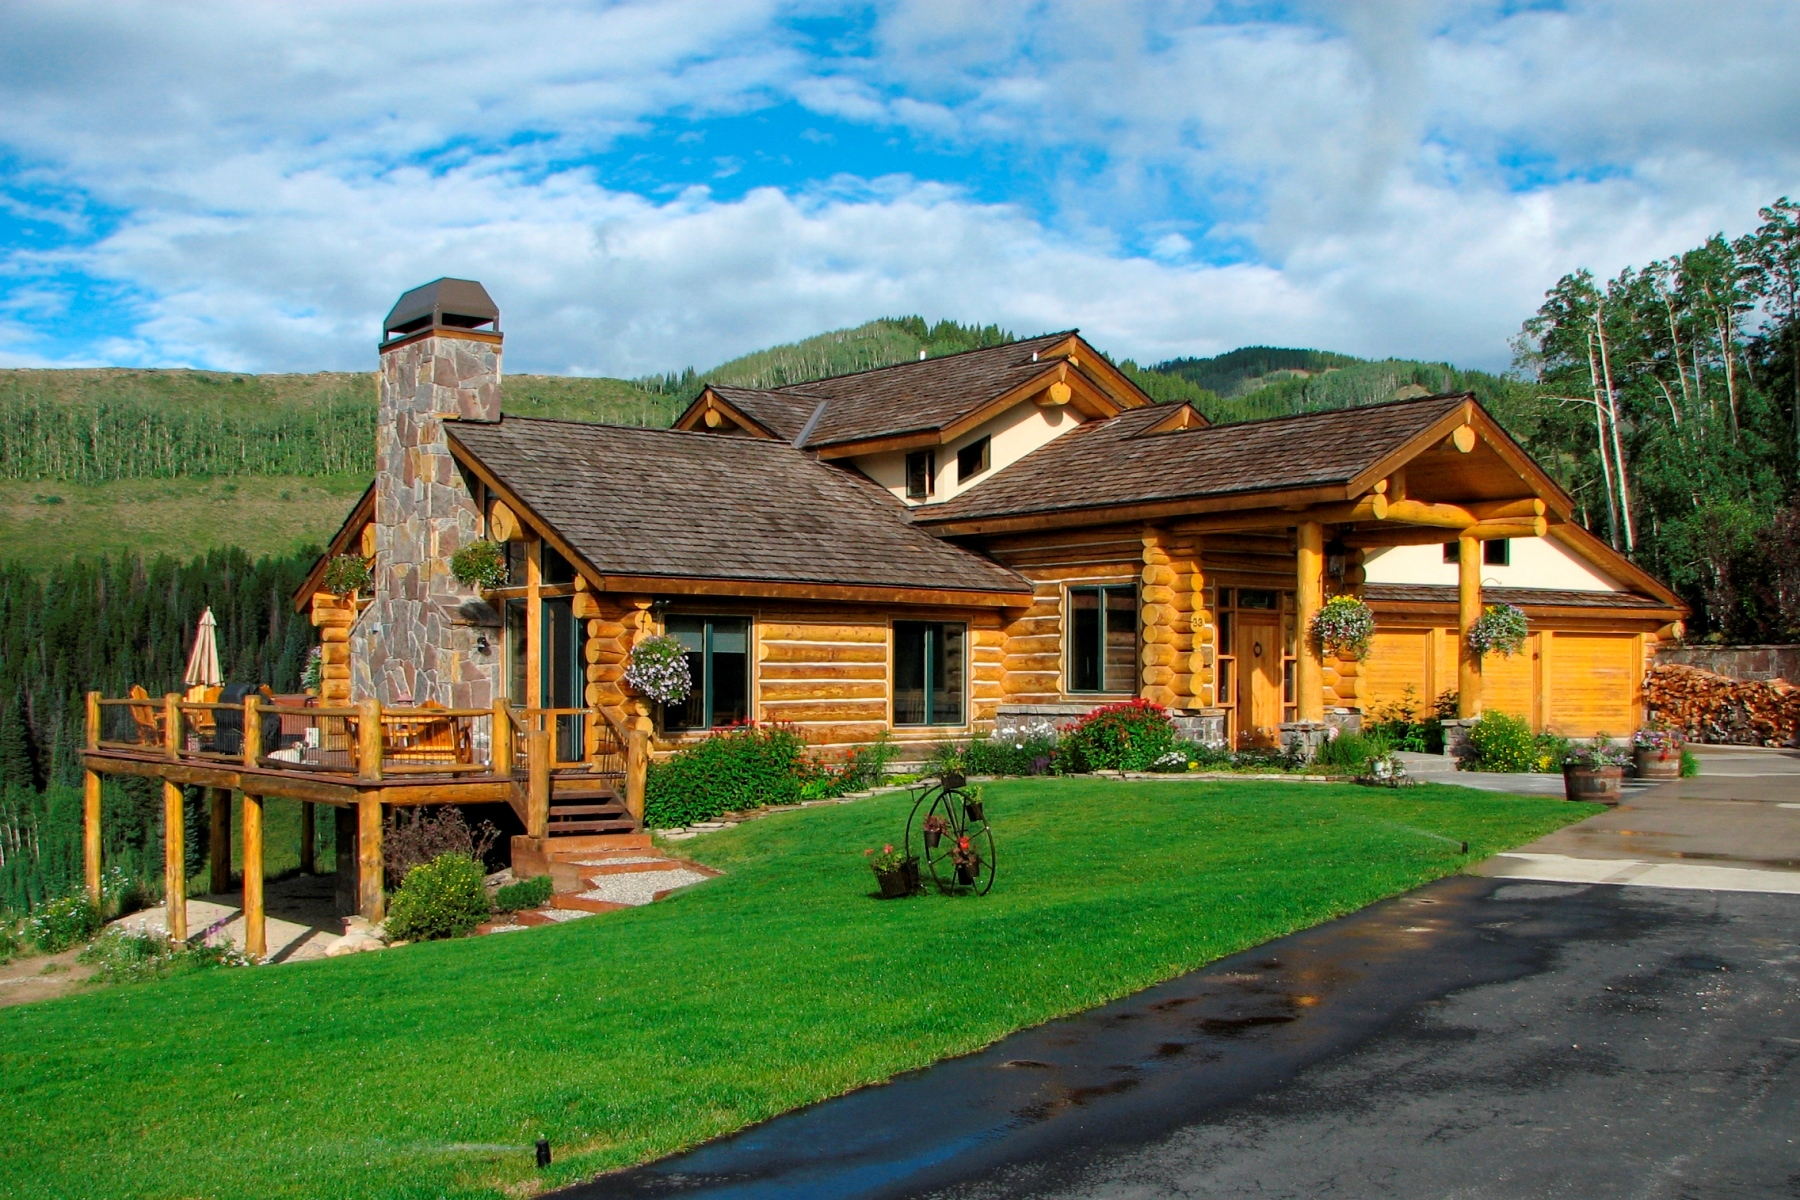 Casa Unifamiliar por un Venta en Immaculate Offering 33 Quartz Circle, Crested Butte, Colorado, 81224 Estados Unidos